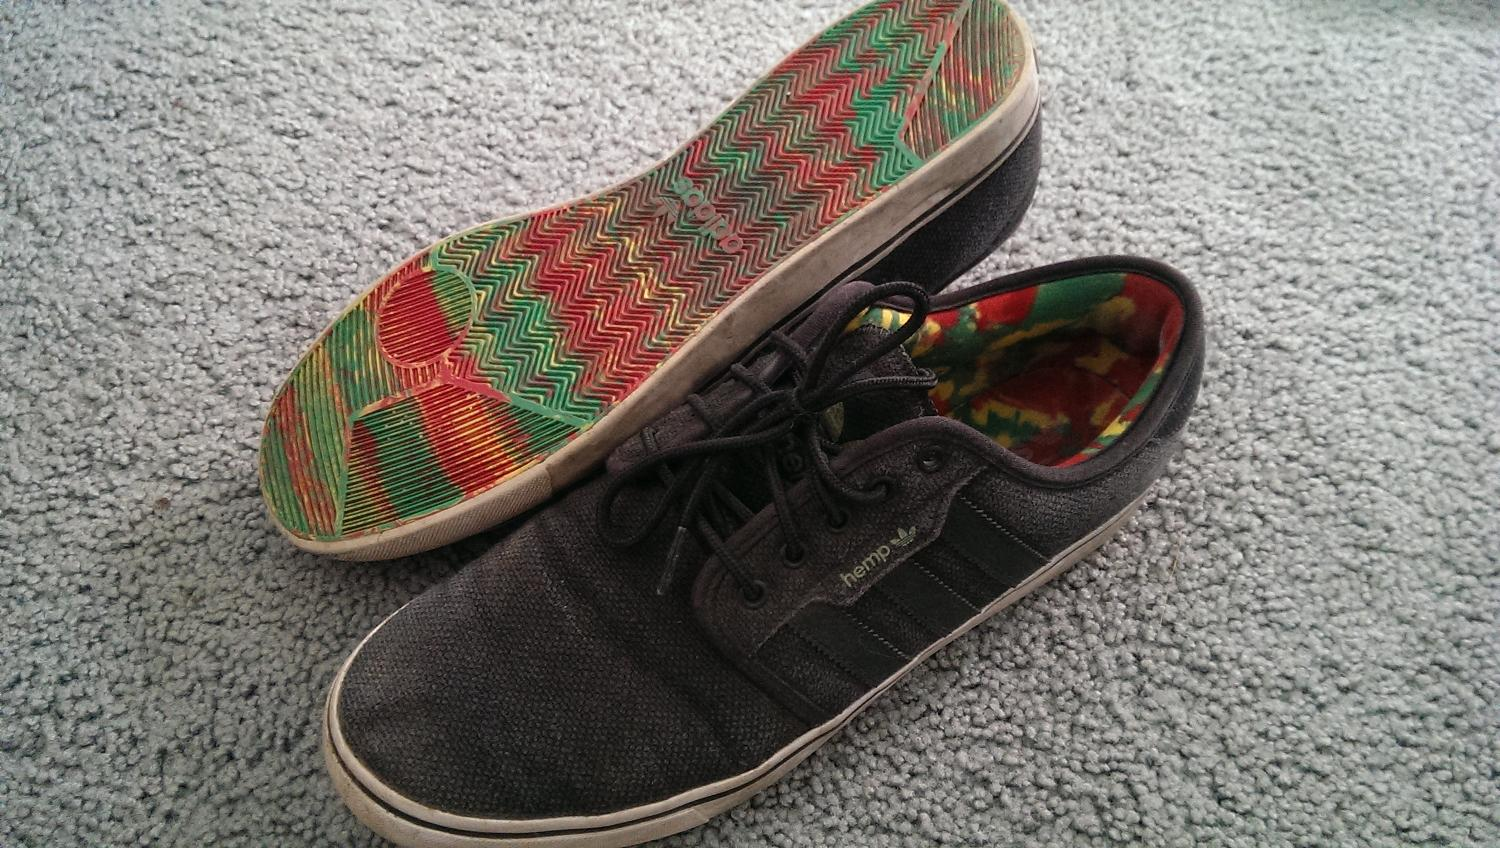 wholesale dealer f7b69 dcc7f Best Adidas Hemp Rasta Shoes for sale in North Delta, British Columbia for  2019